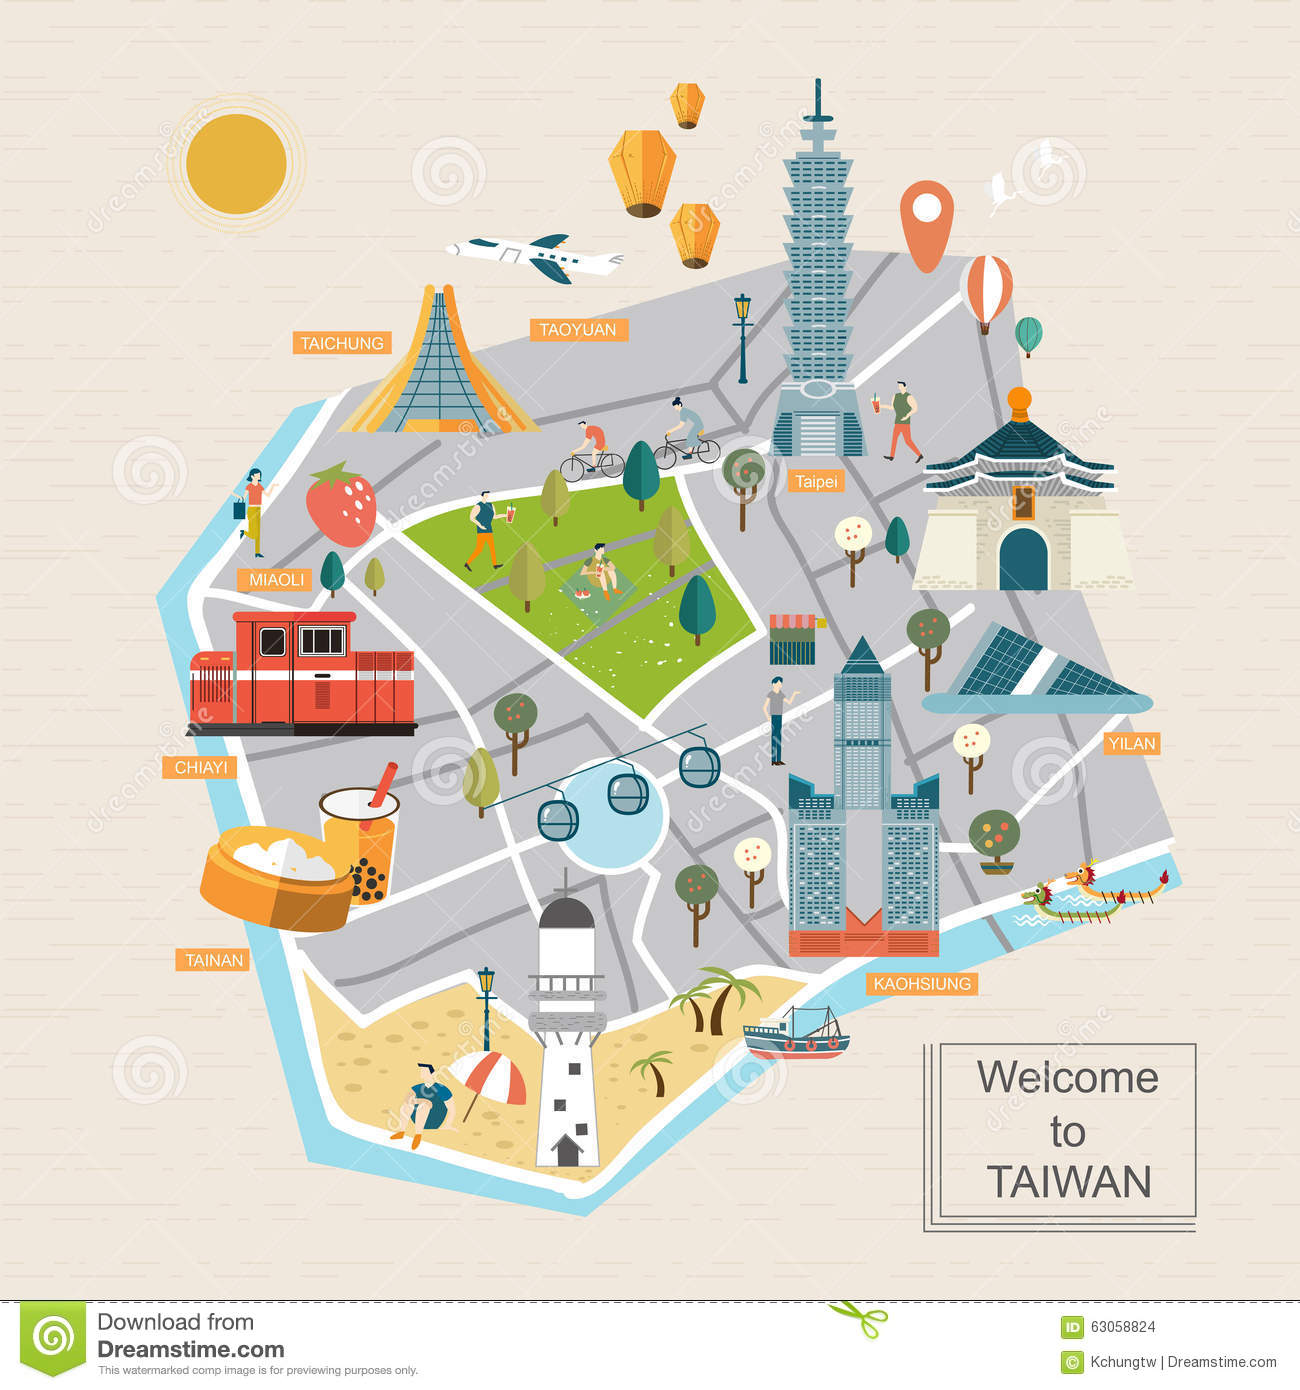 Physical Features Of Asia further Educar En Interculturalidad moreover 718674606201765889 as well The City Of Moscow together with David Adjayes Smithsonian African American Museum Underway 12 13 2013. on taiwan culture map